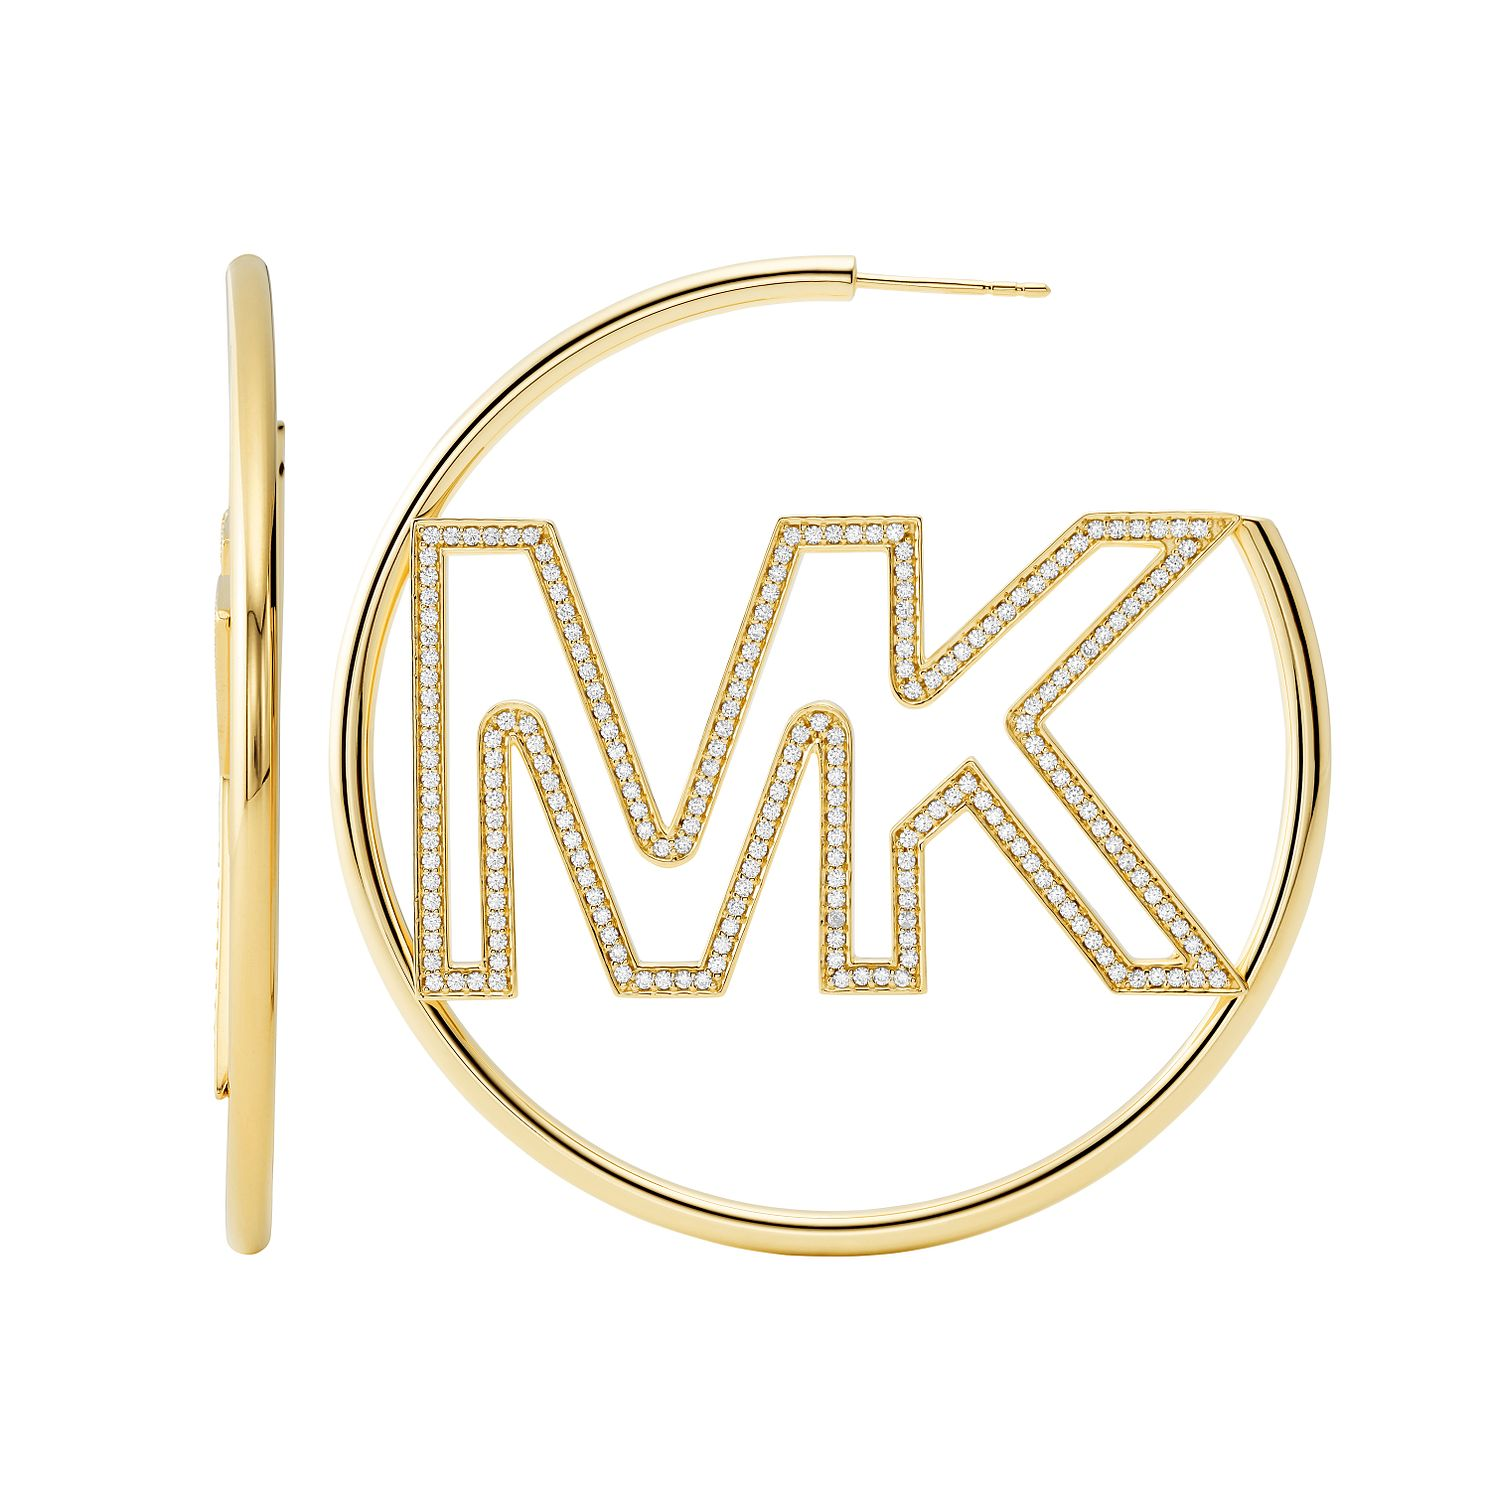 Michael Kors Gold Plated Silver Logo 3/4 Hoop Earrings - Product number 4939883